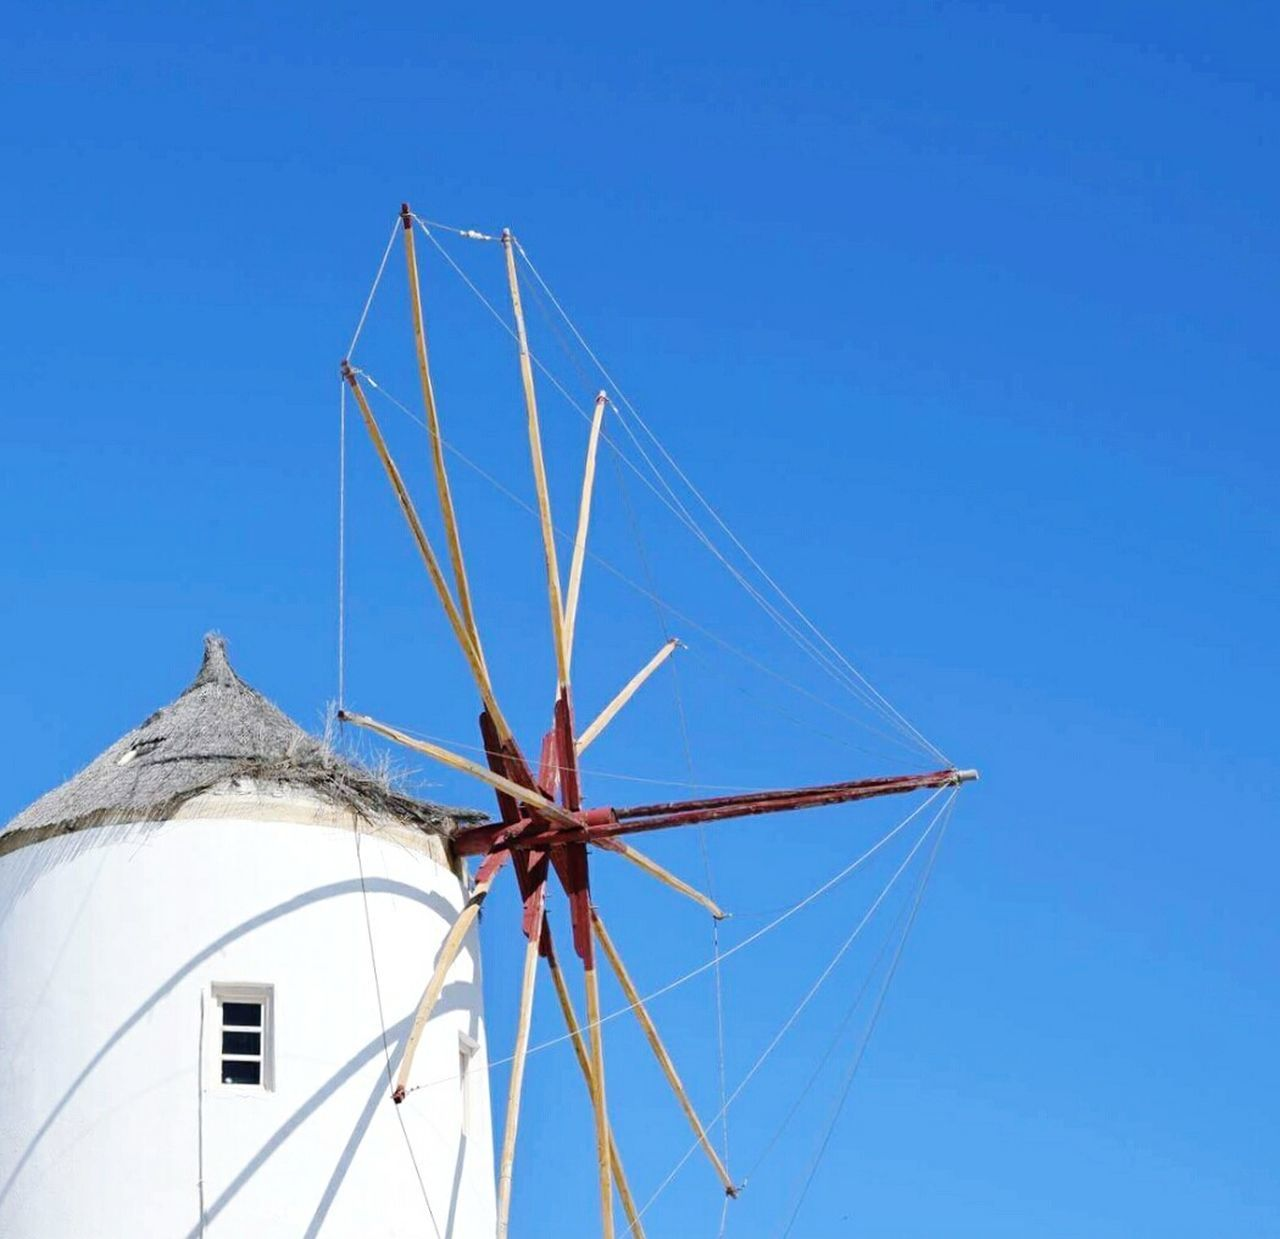 Blue Clear Sky Sunlight Low Angle View Architecture Windmill Outdoors Sky No People Day 3XPSUnity Photography Greece Hellas Santorini Eyeemphotography Minimalist Photography  Mimimalmood EyeEm Best Shots EyeEm Gallery 3XSPUnity EyeEmNewHere Detailphotography Picsoftheday Architecture